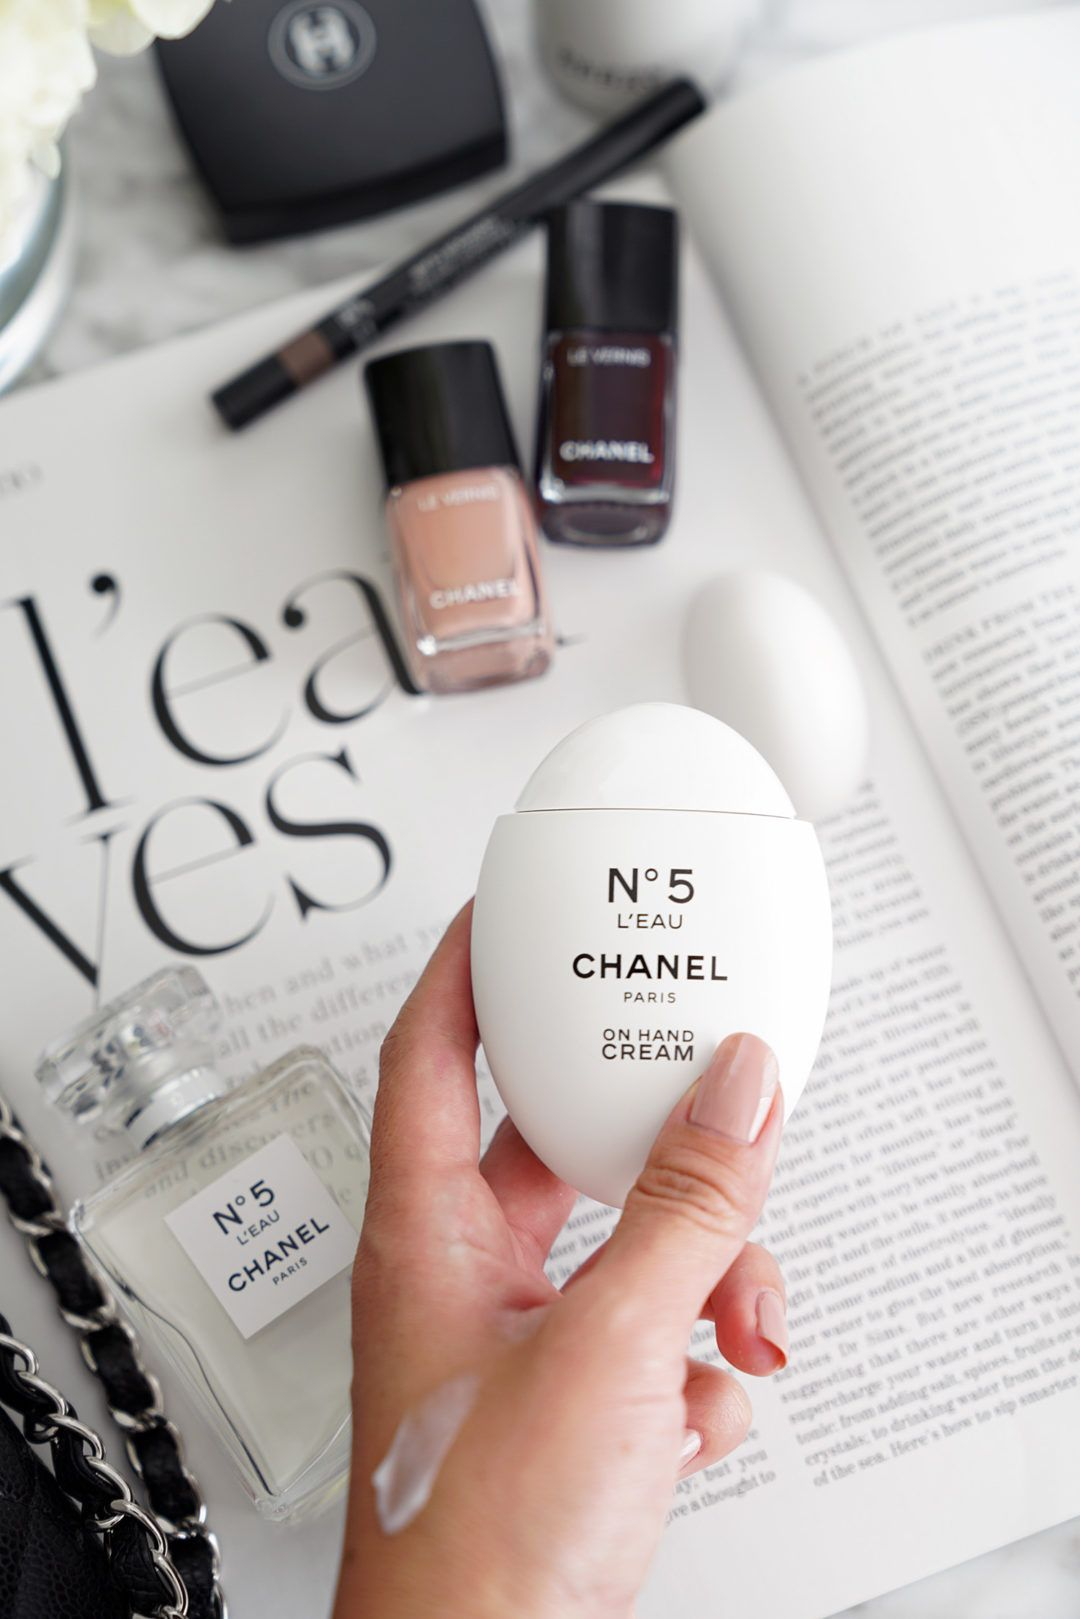 Chanel No 5 L Eau On Hand Cream Review Hand Cream Hand Cream